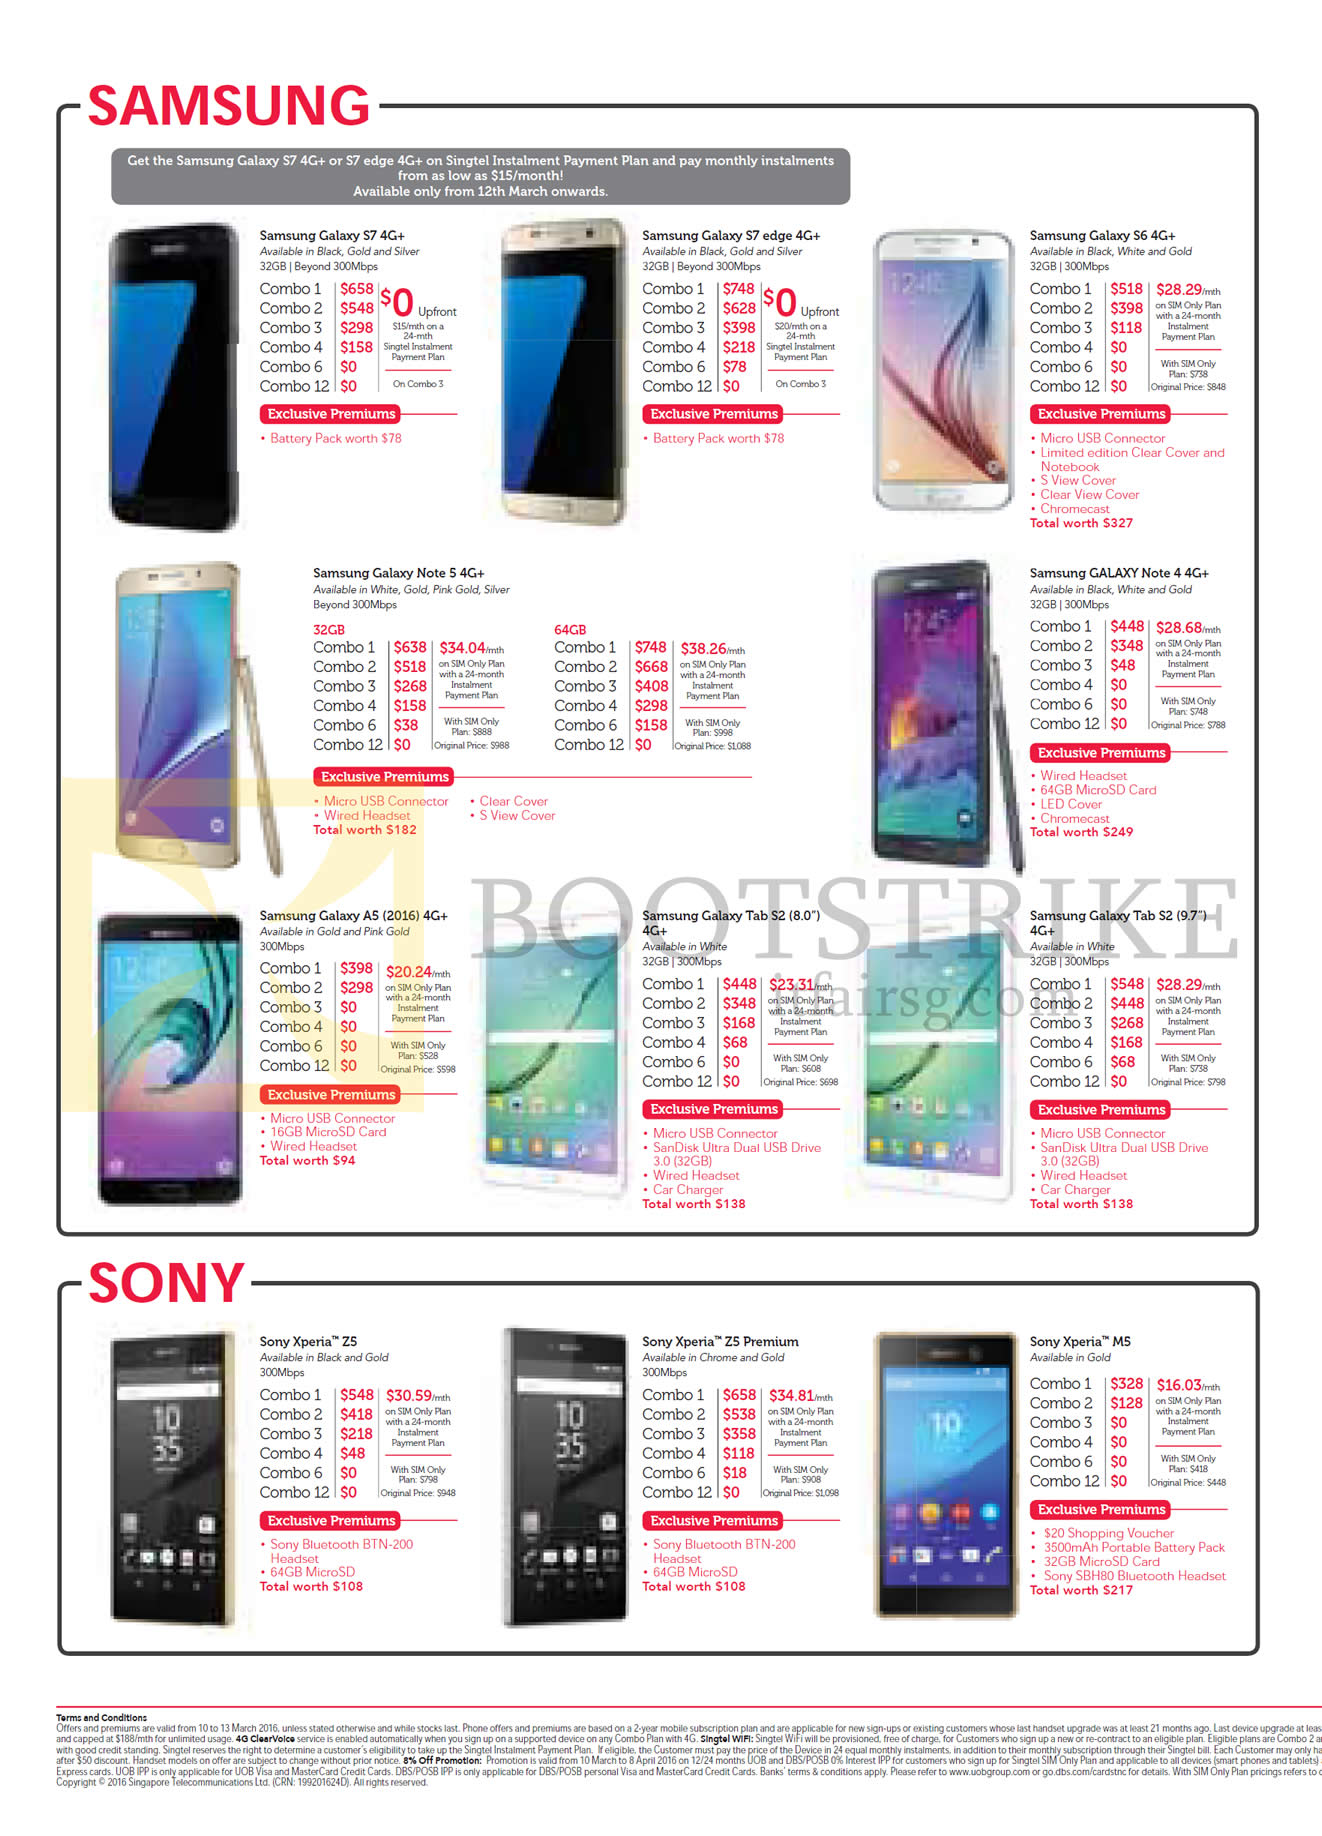 Singtel Mobile Phones Samsung, Sony, Galaxy S7, S7 Edge, S6, Note 5